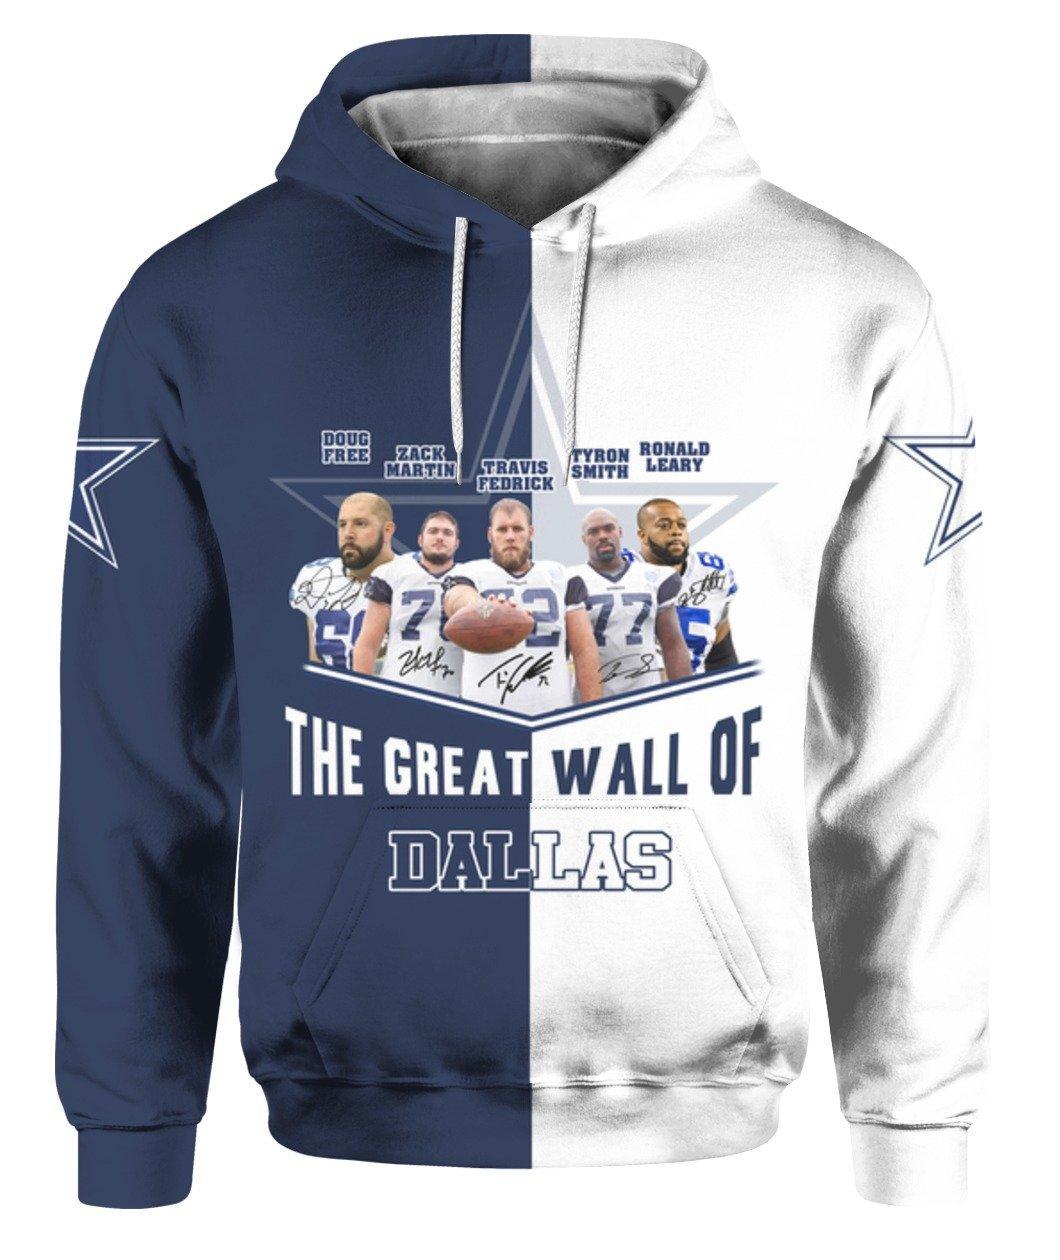 Dallas Cowboy Player The Great Wall Of Dallas 3d Full Printed Shirt 3d Graphic Printed Tshirt Hoodie Size S-5XL